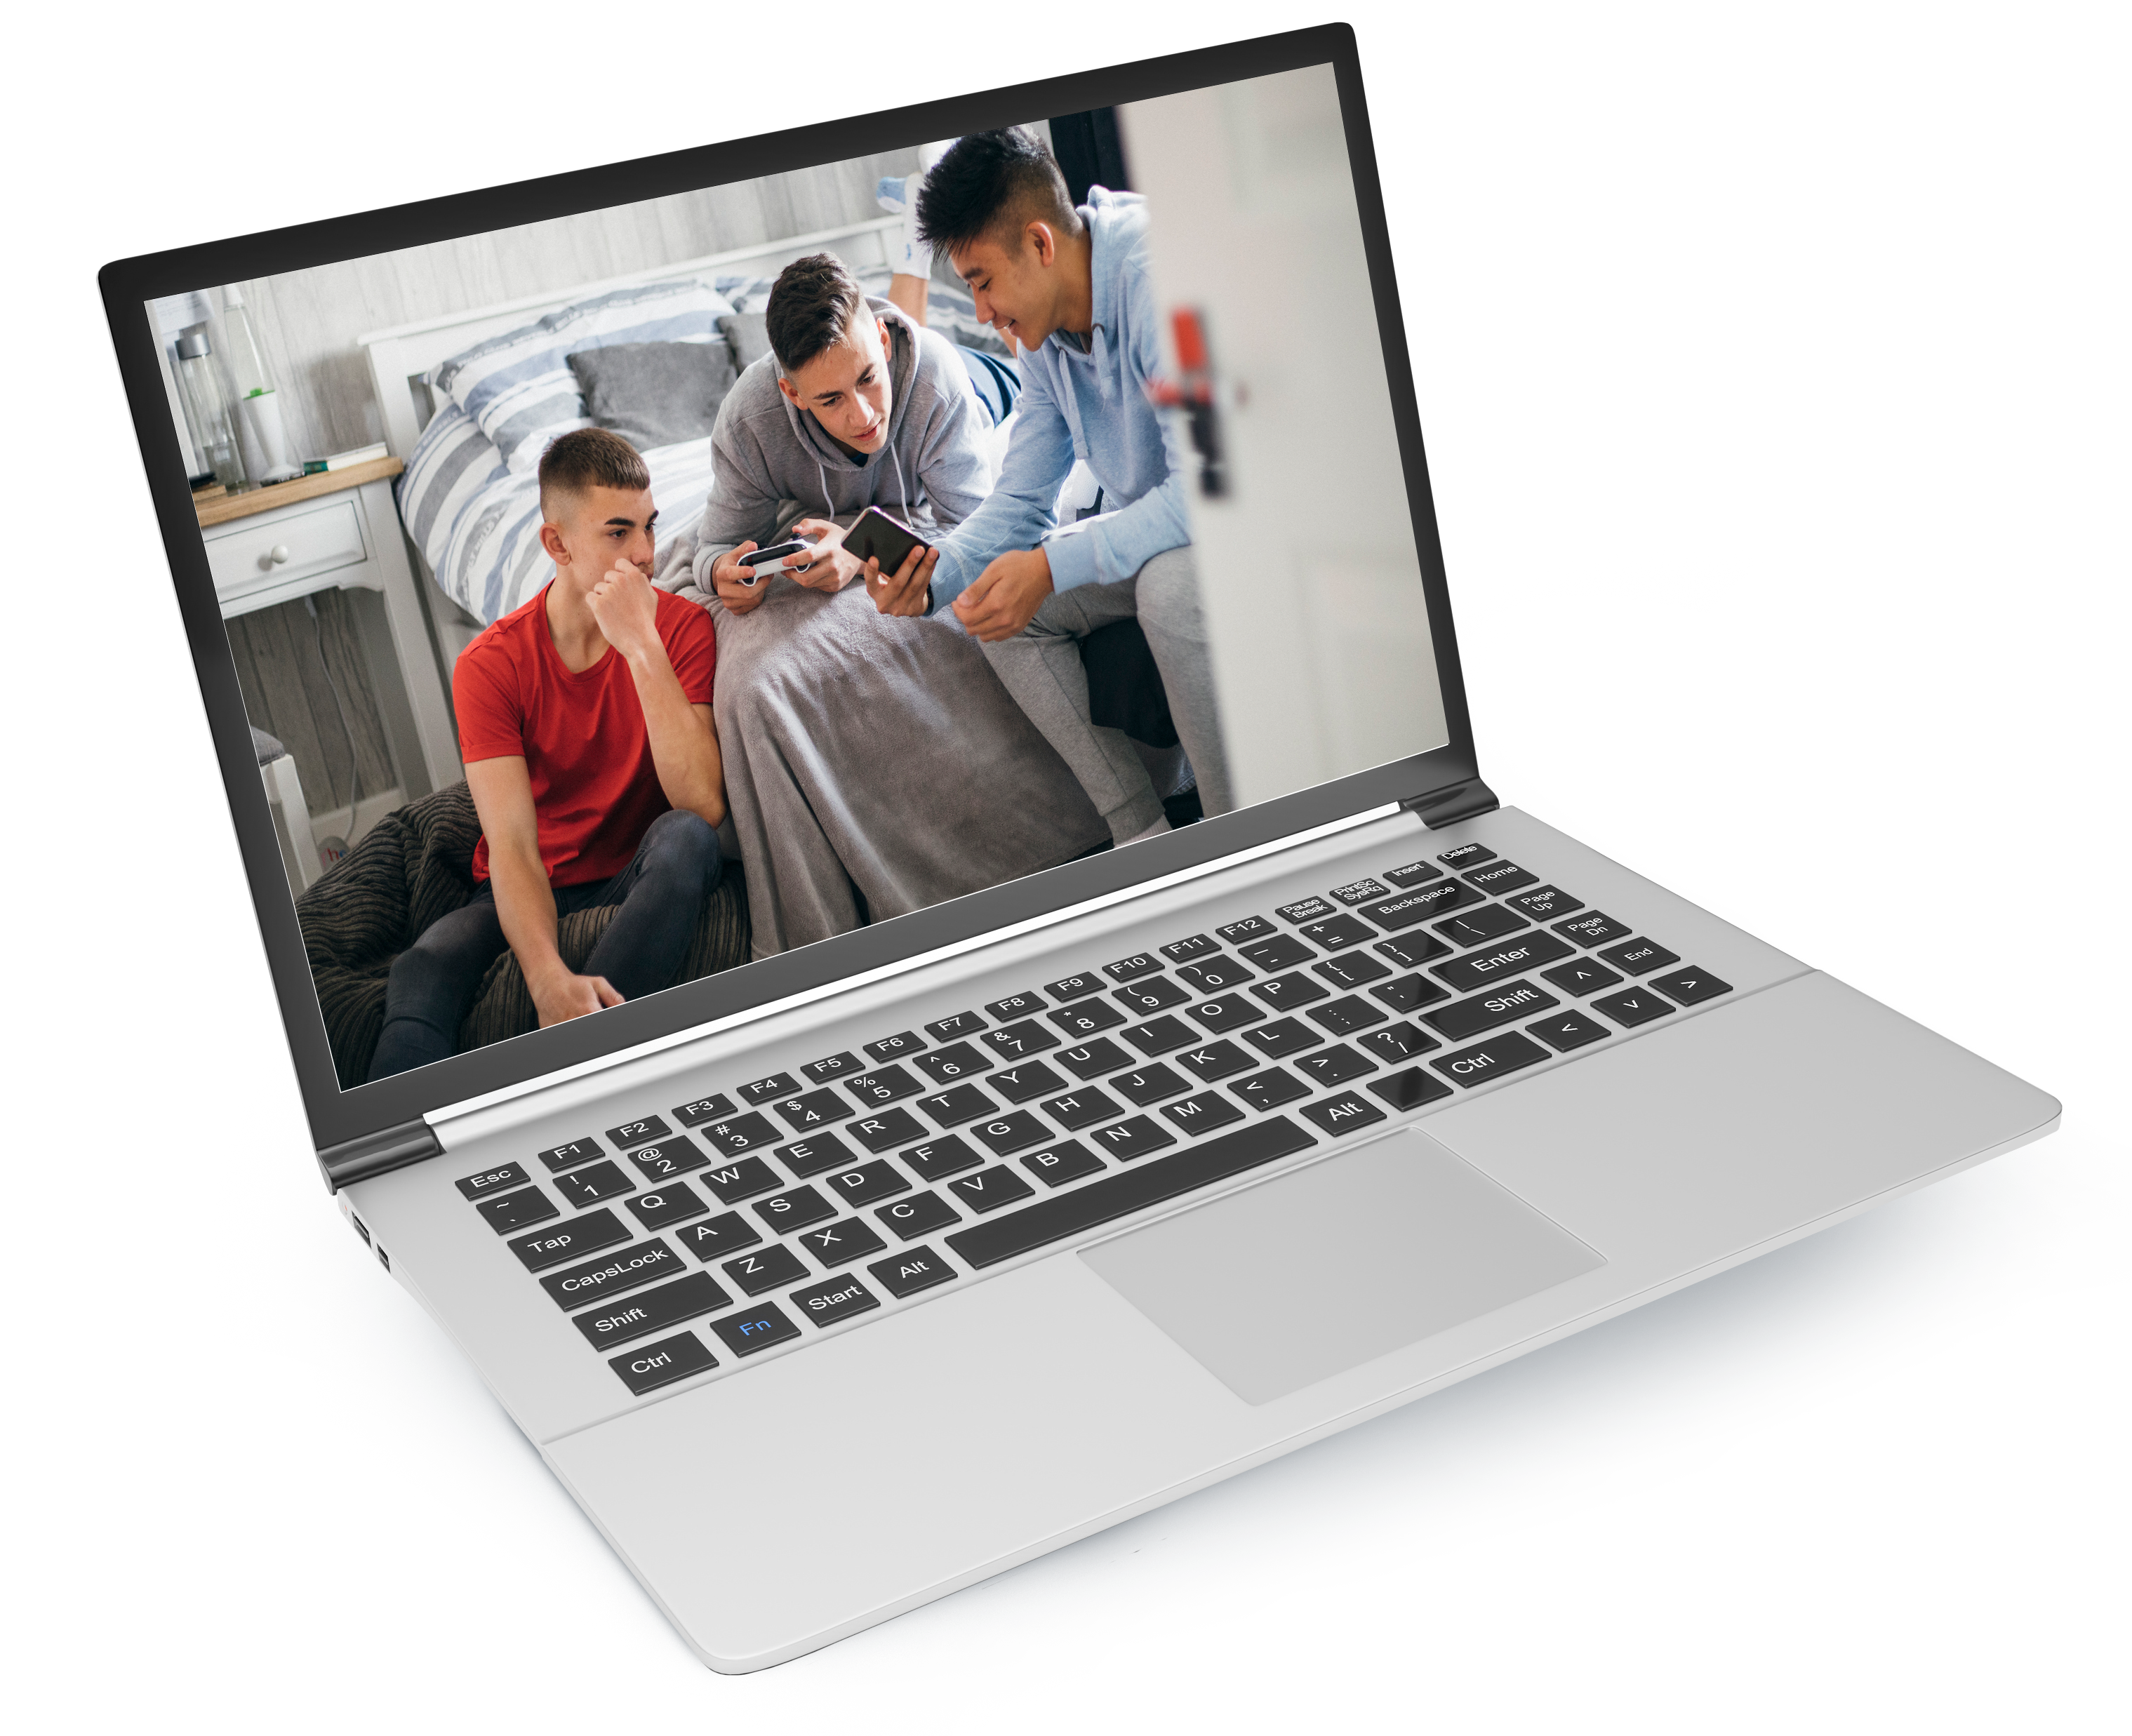 laptop with teens hanging out on screen